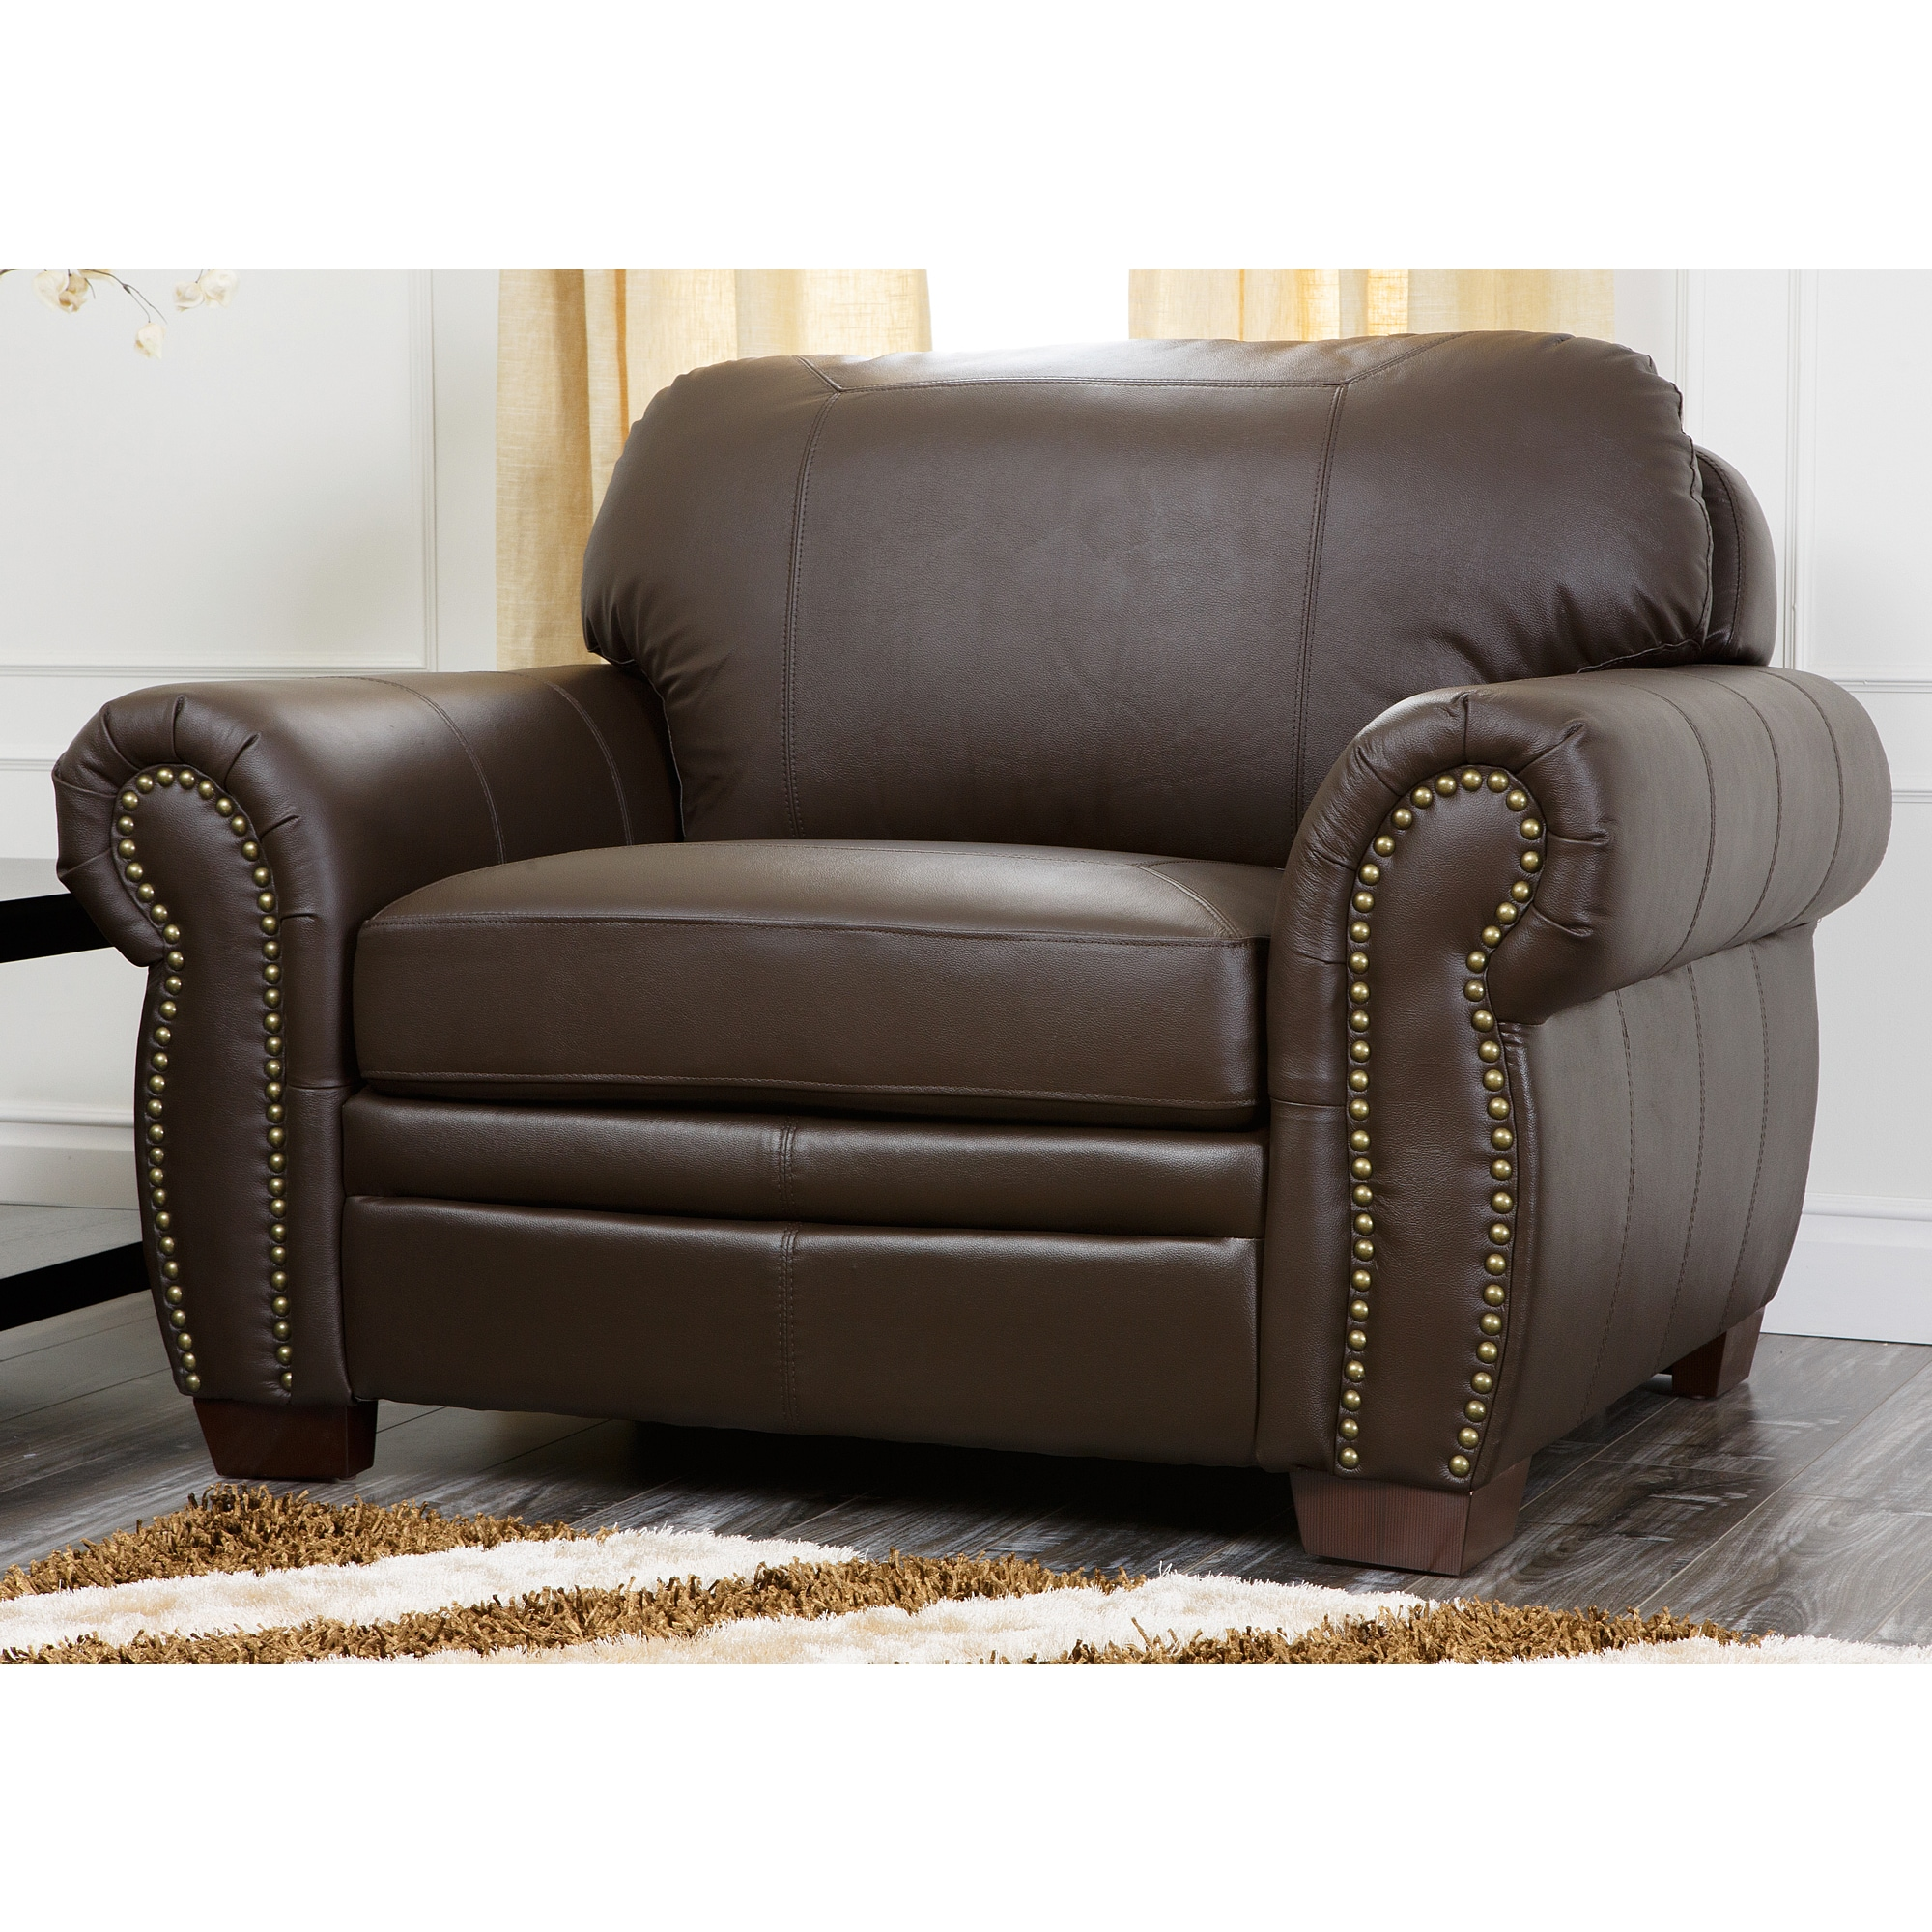 Oversized Living Room Chair Abbyson Living Signature Italian Leather Oversized Chair